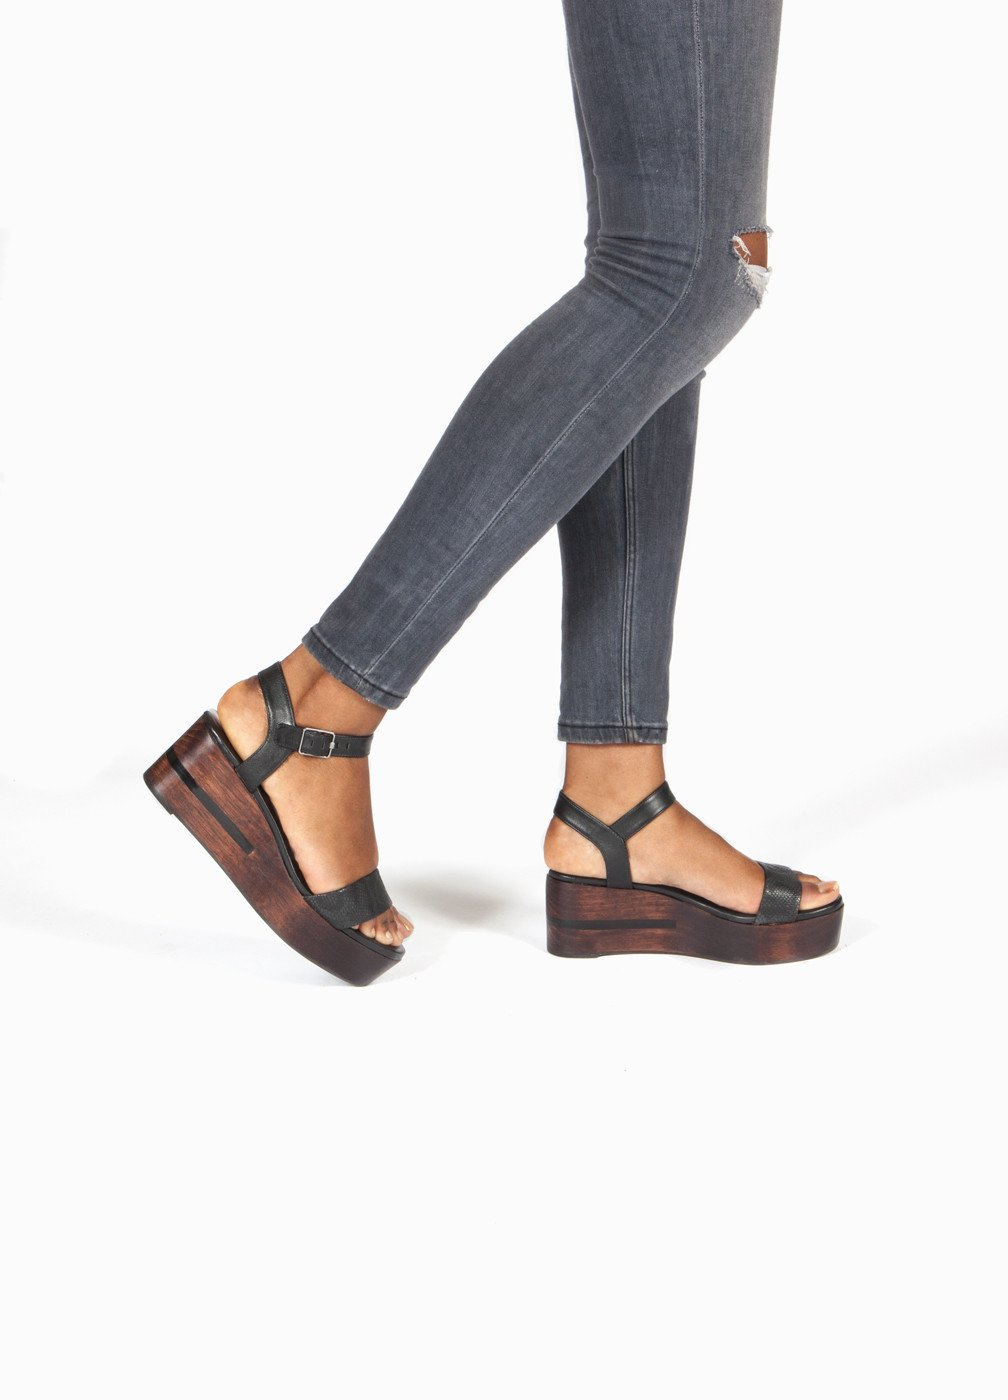 Platform Sandals Are Very Much a Thing Again